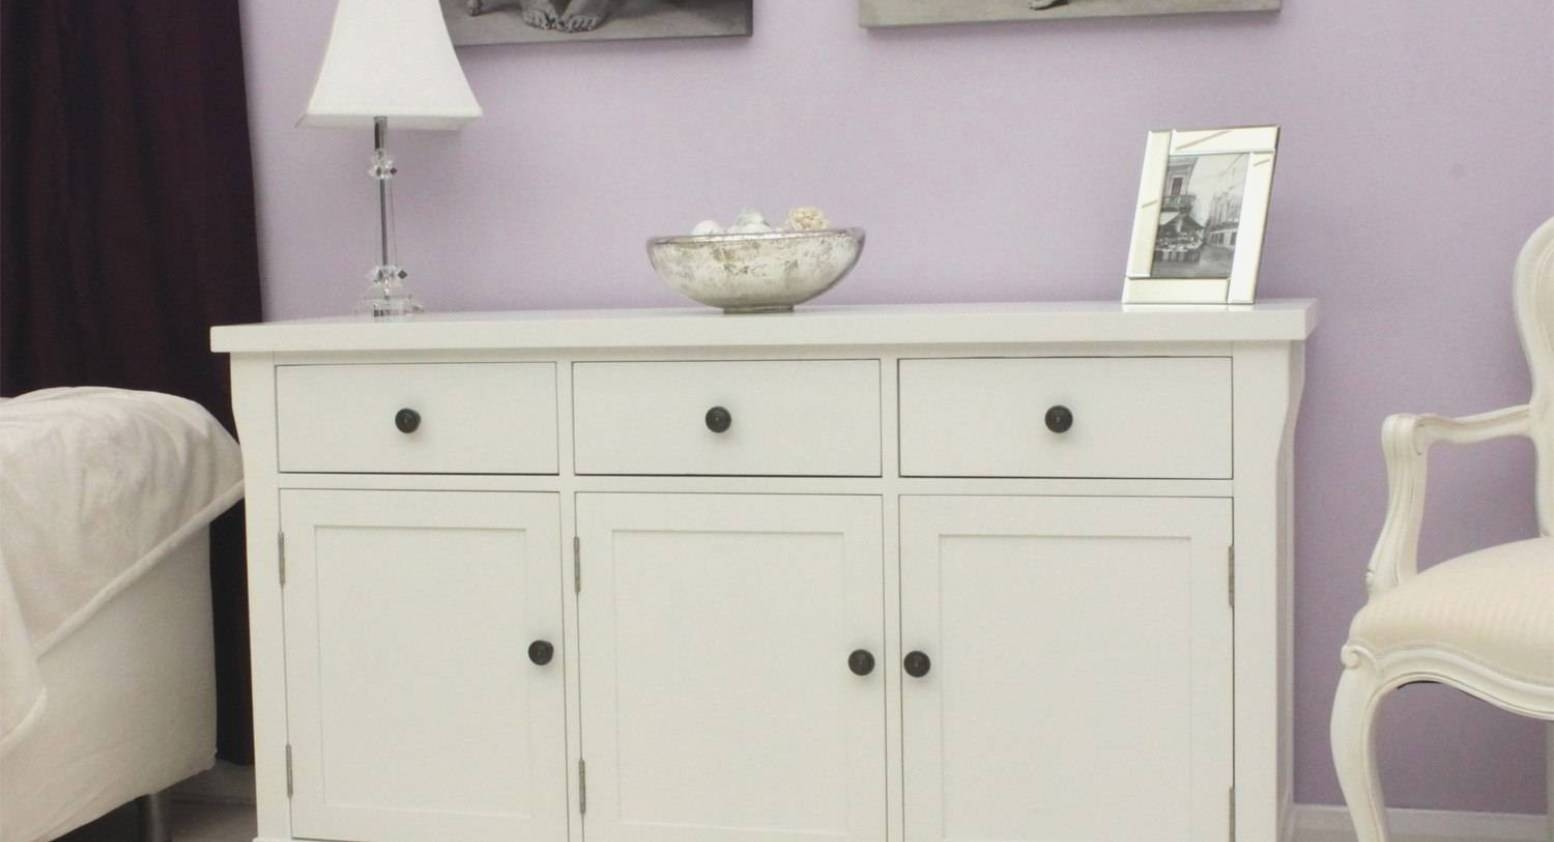 Sideboard : Sideboard Decor Awesome Living Room Sideboards Best 25 with Hallway Sideboards (Image 11 of 15)